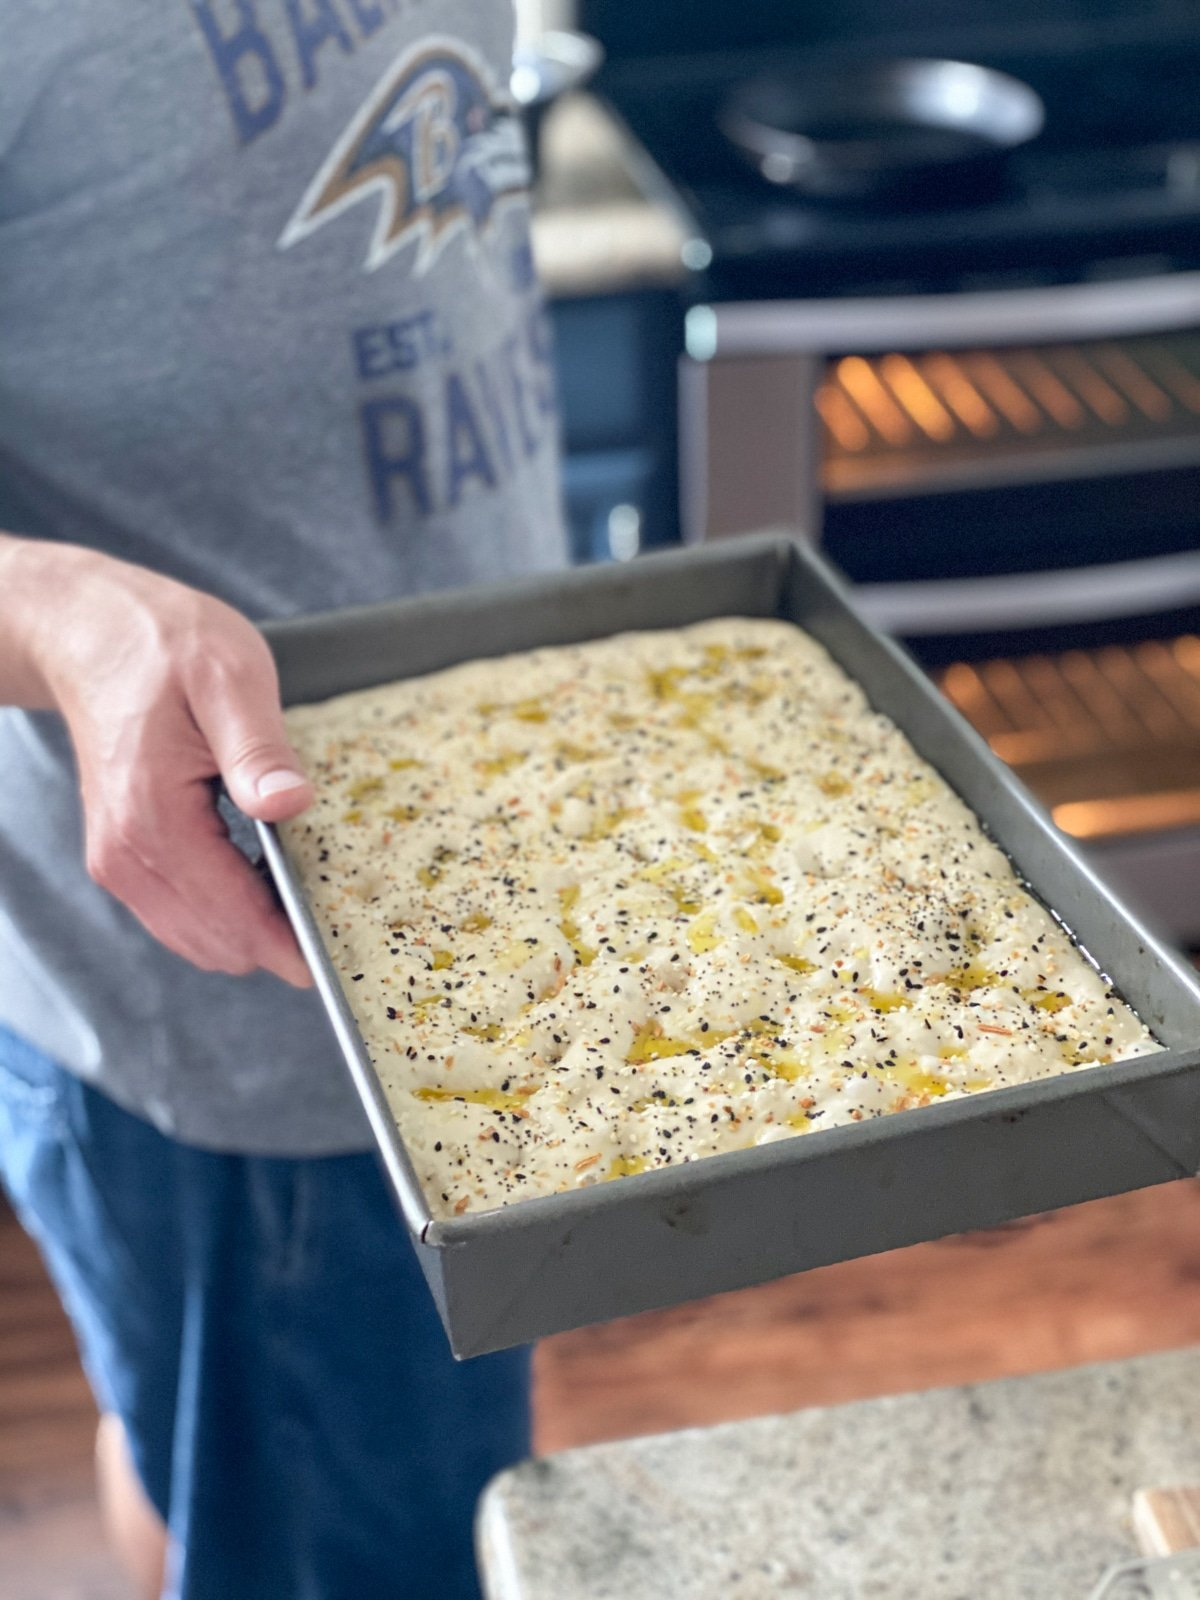 Baking focaccia bread with seeds